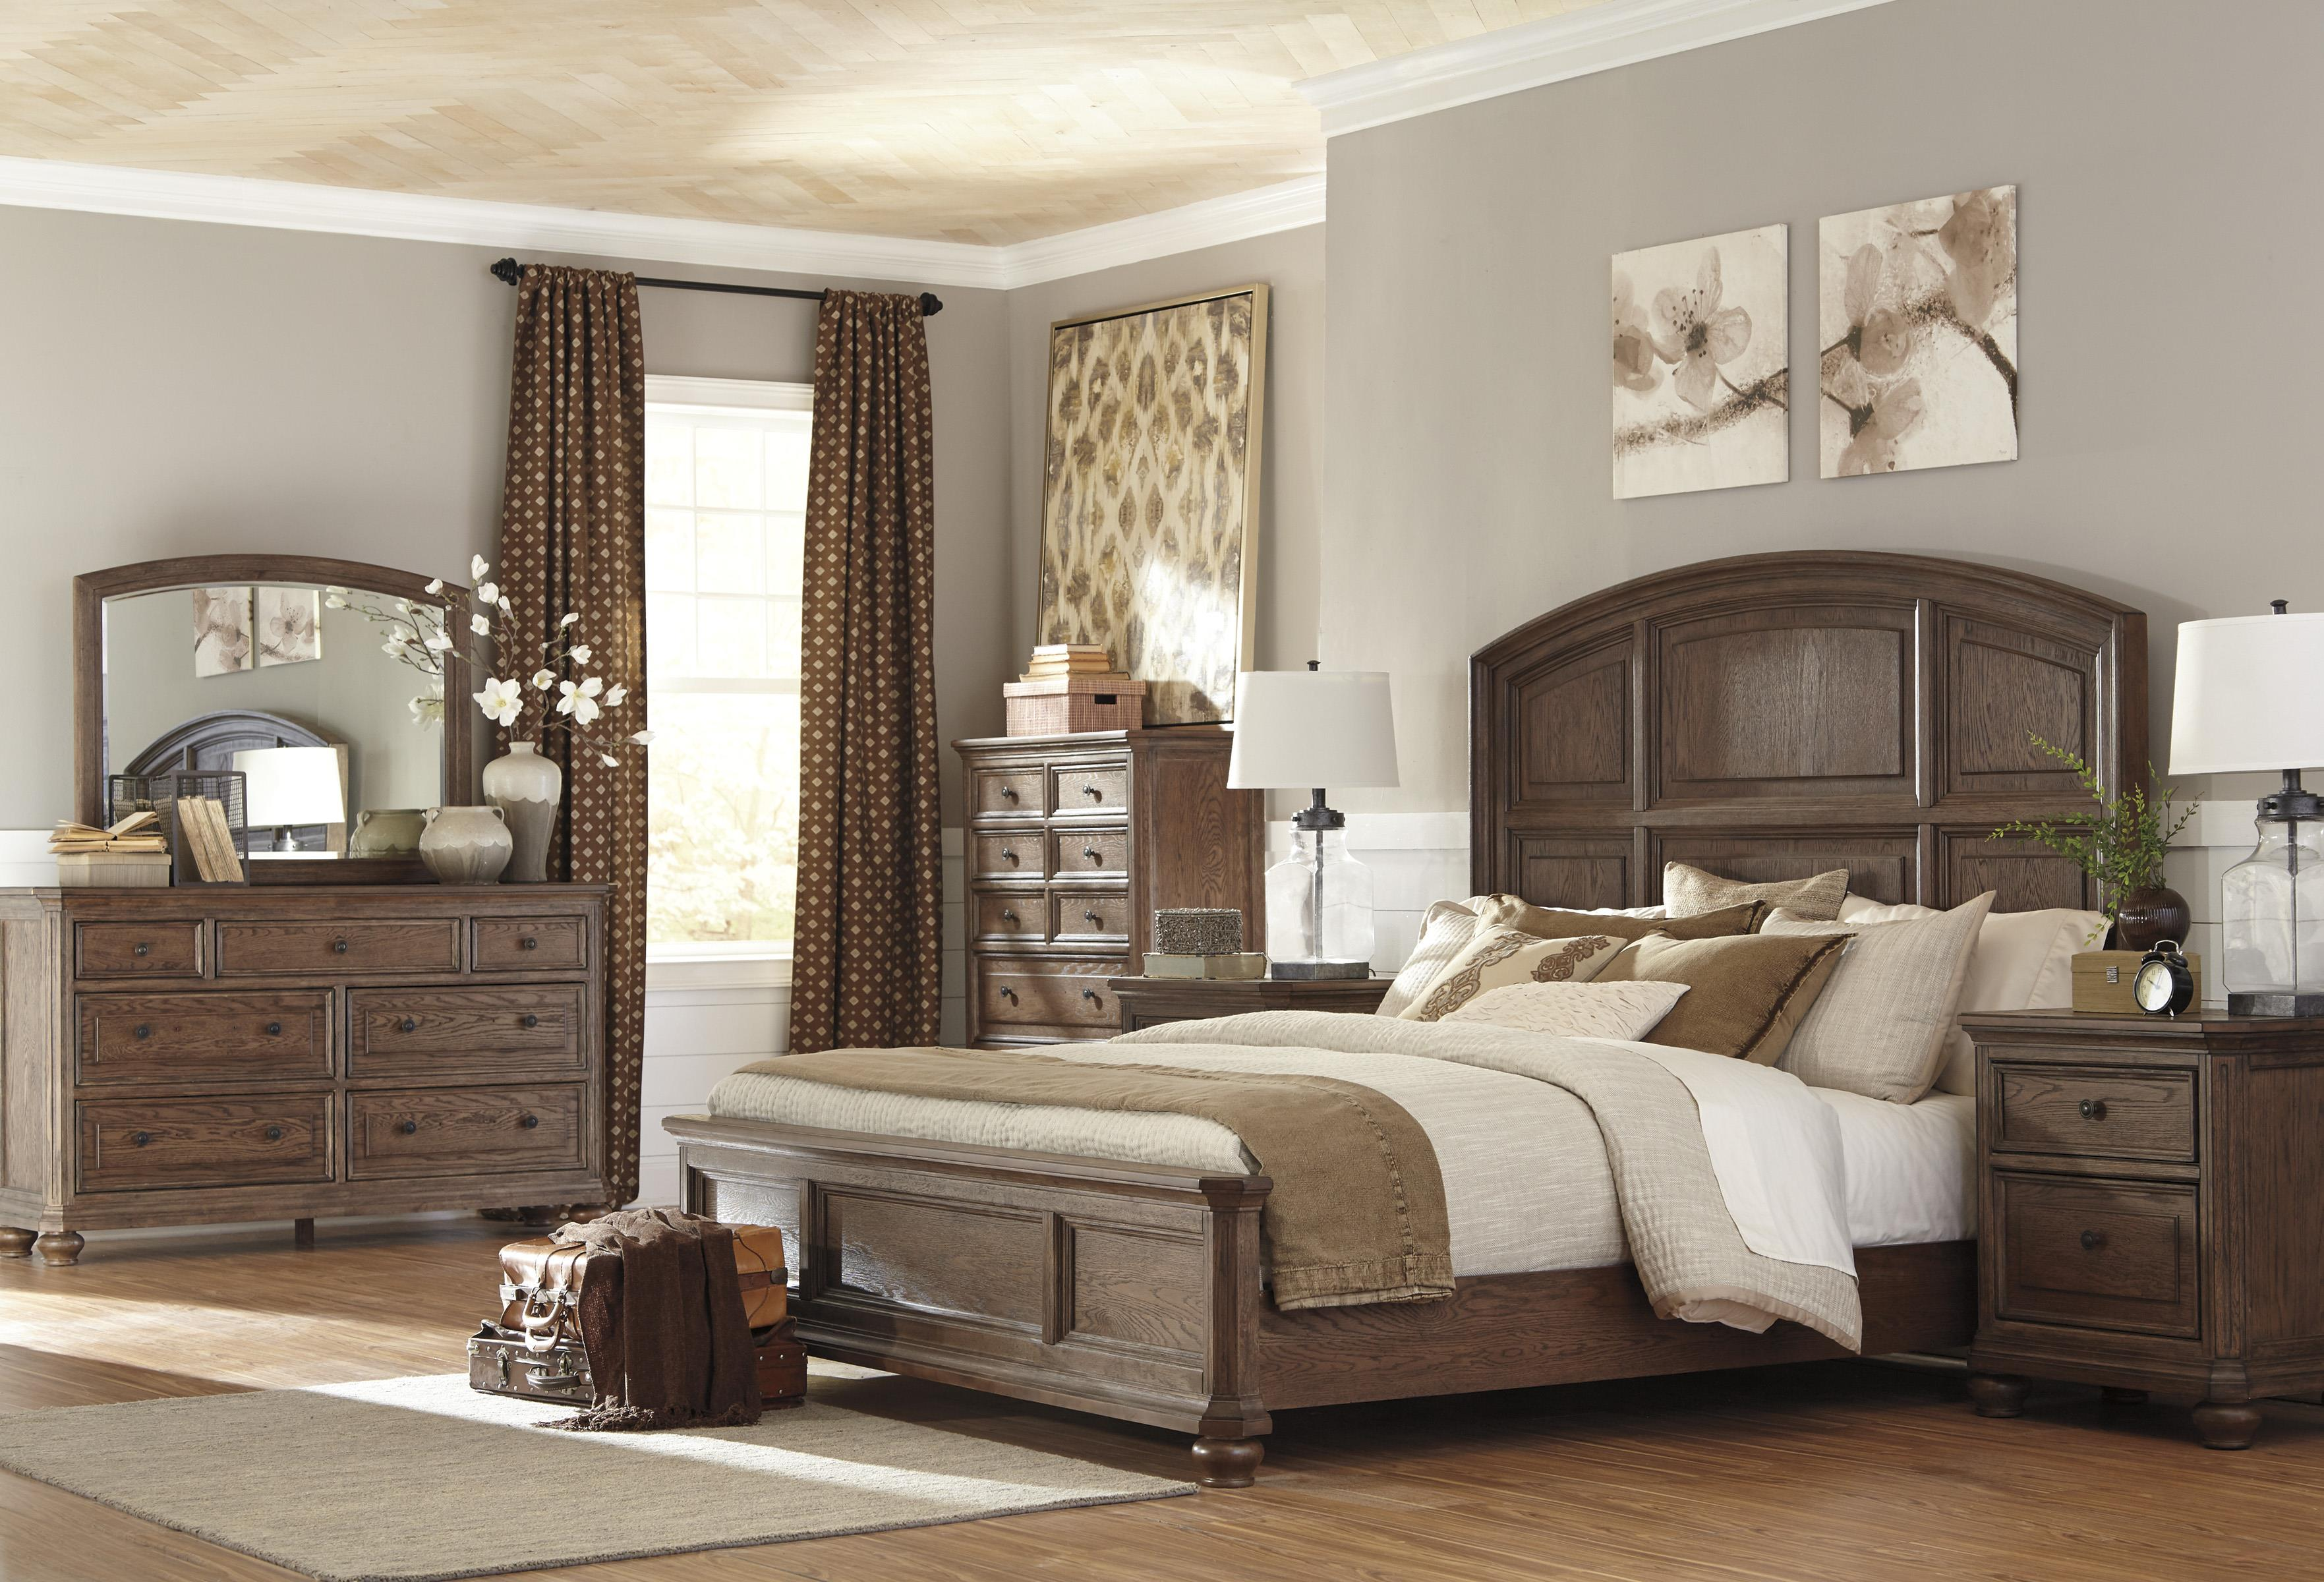 Signature Design by Ashley Maeleen King Bedroom Group - Item Number: B709 K Bedroom Group 1